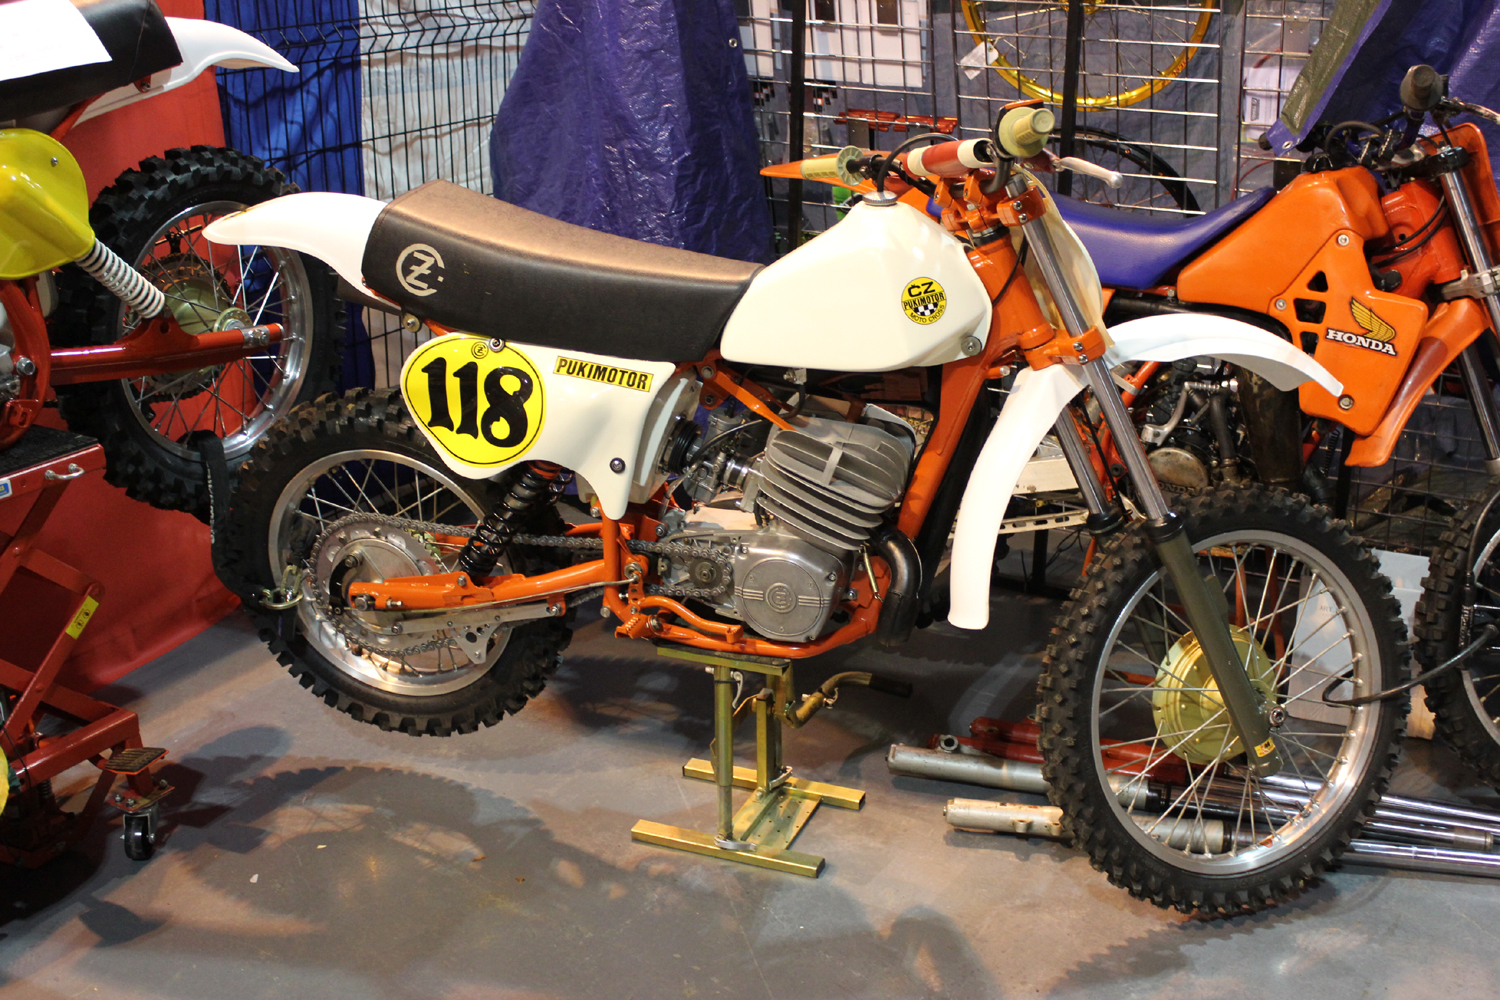 classicdirtbikerider.com-photo by Mr J-2015 Telford classic dirt bike show-CZ TWINSHOCKER